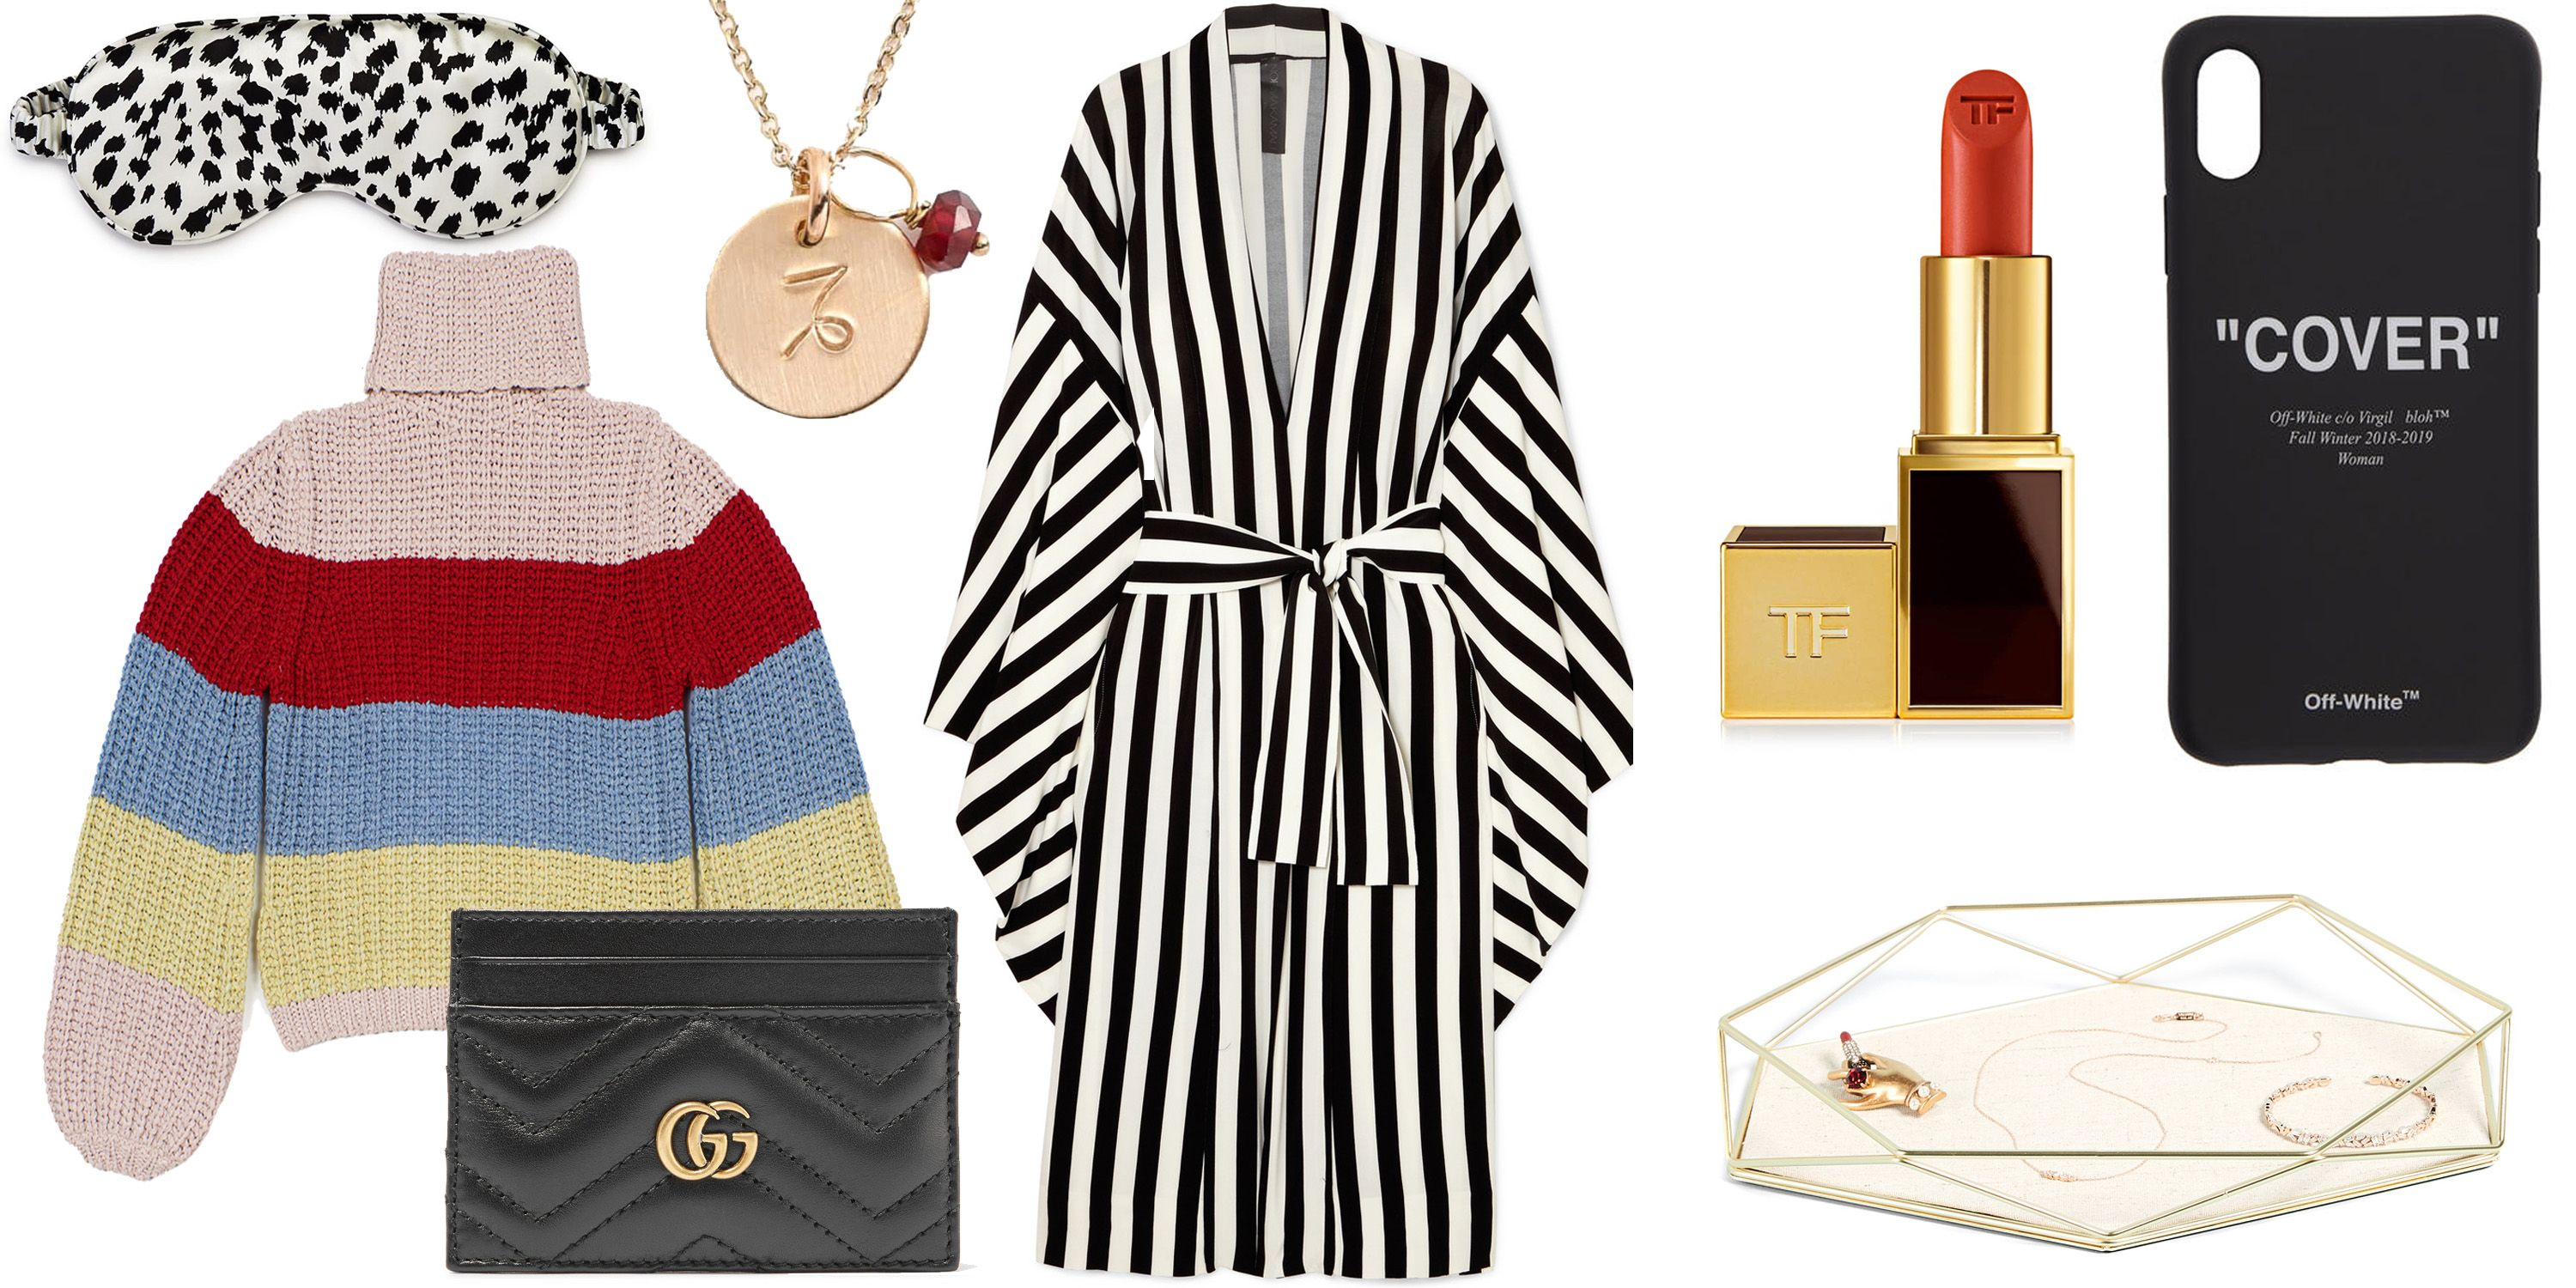 17 Best Gifts For Women 2018 Stylish Christmas Gift